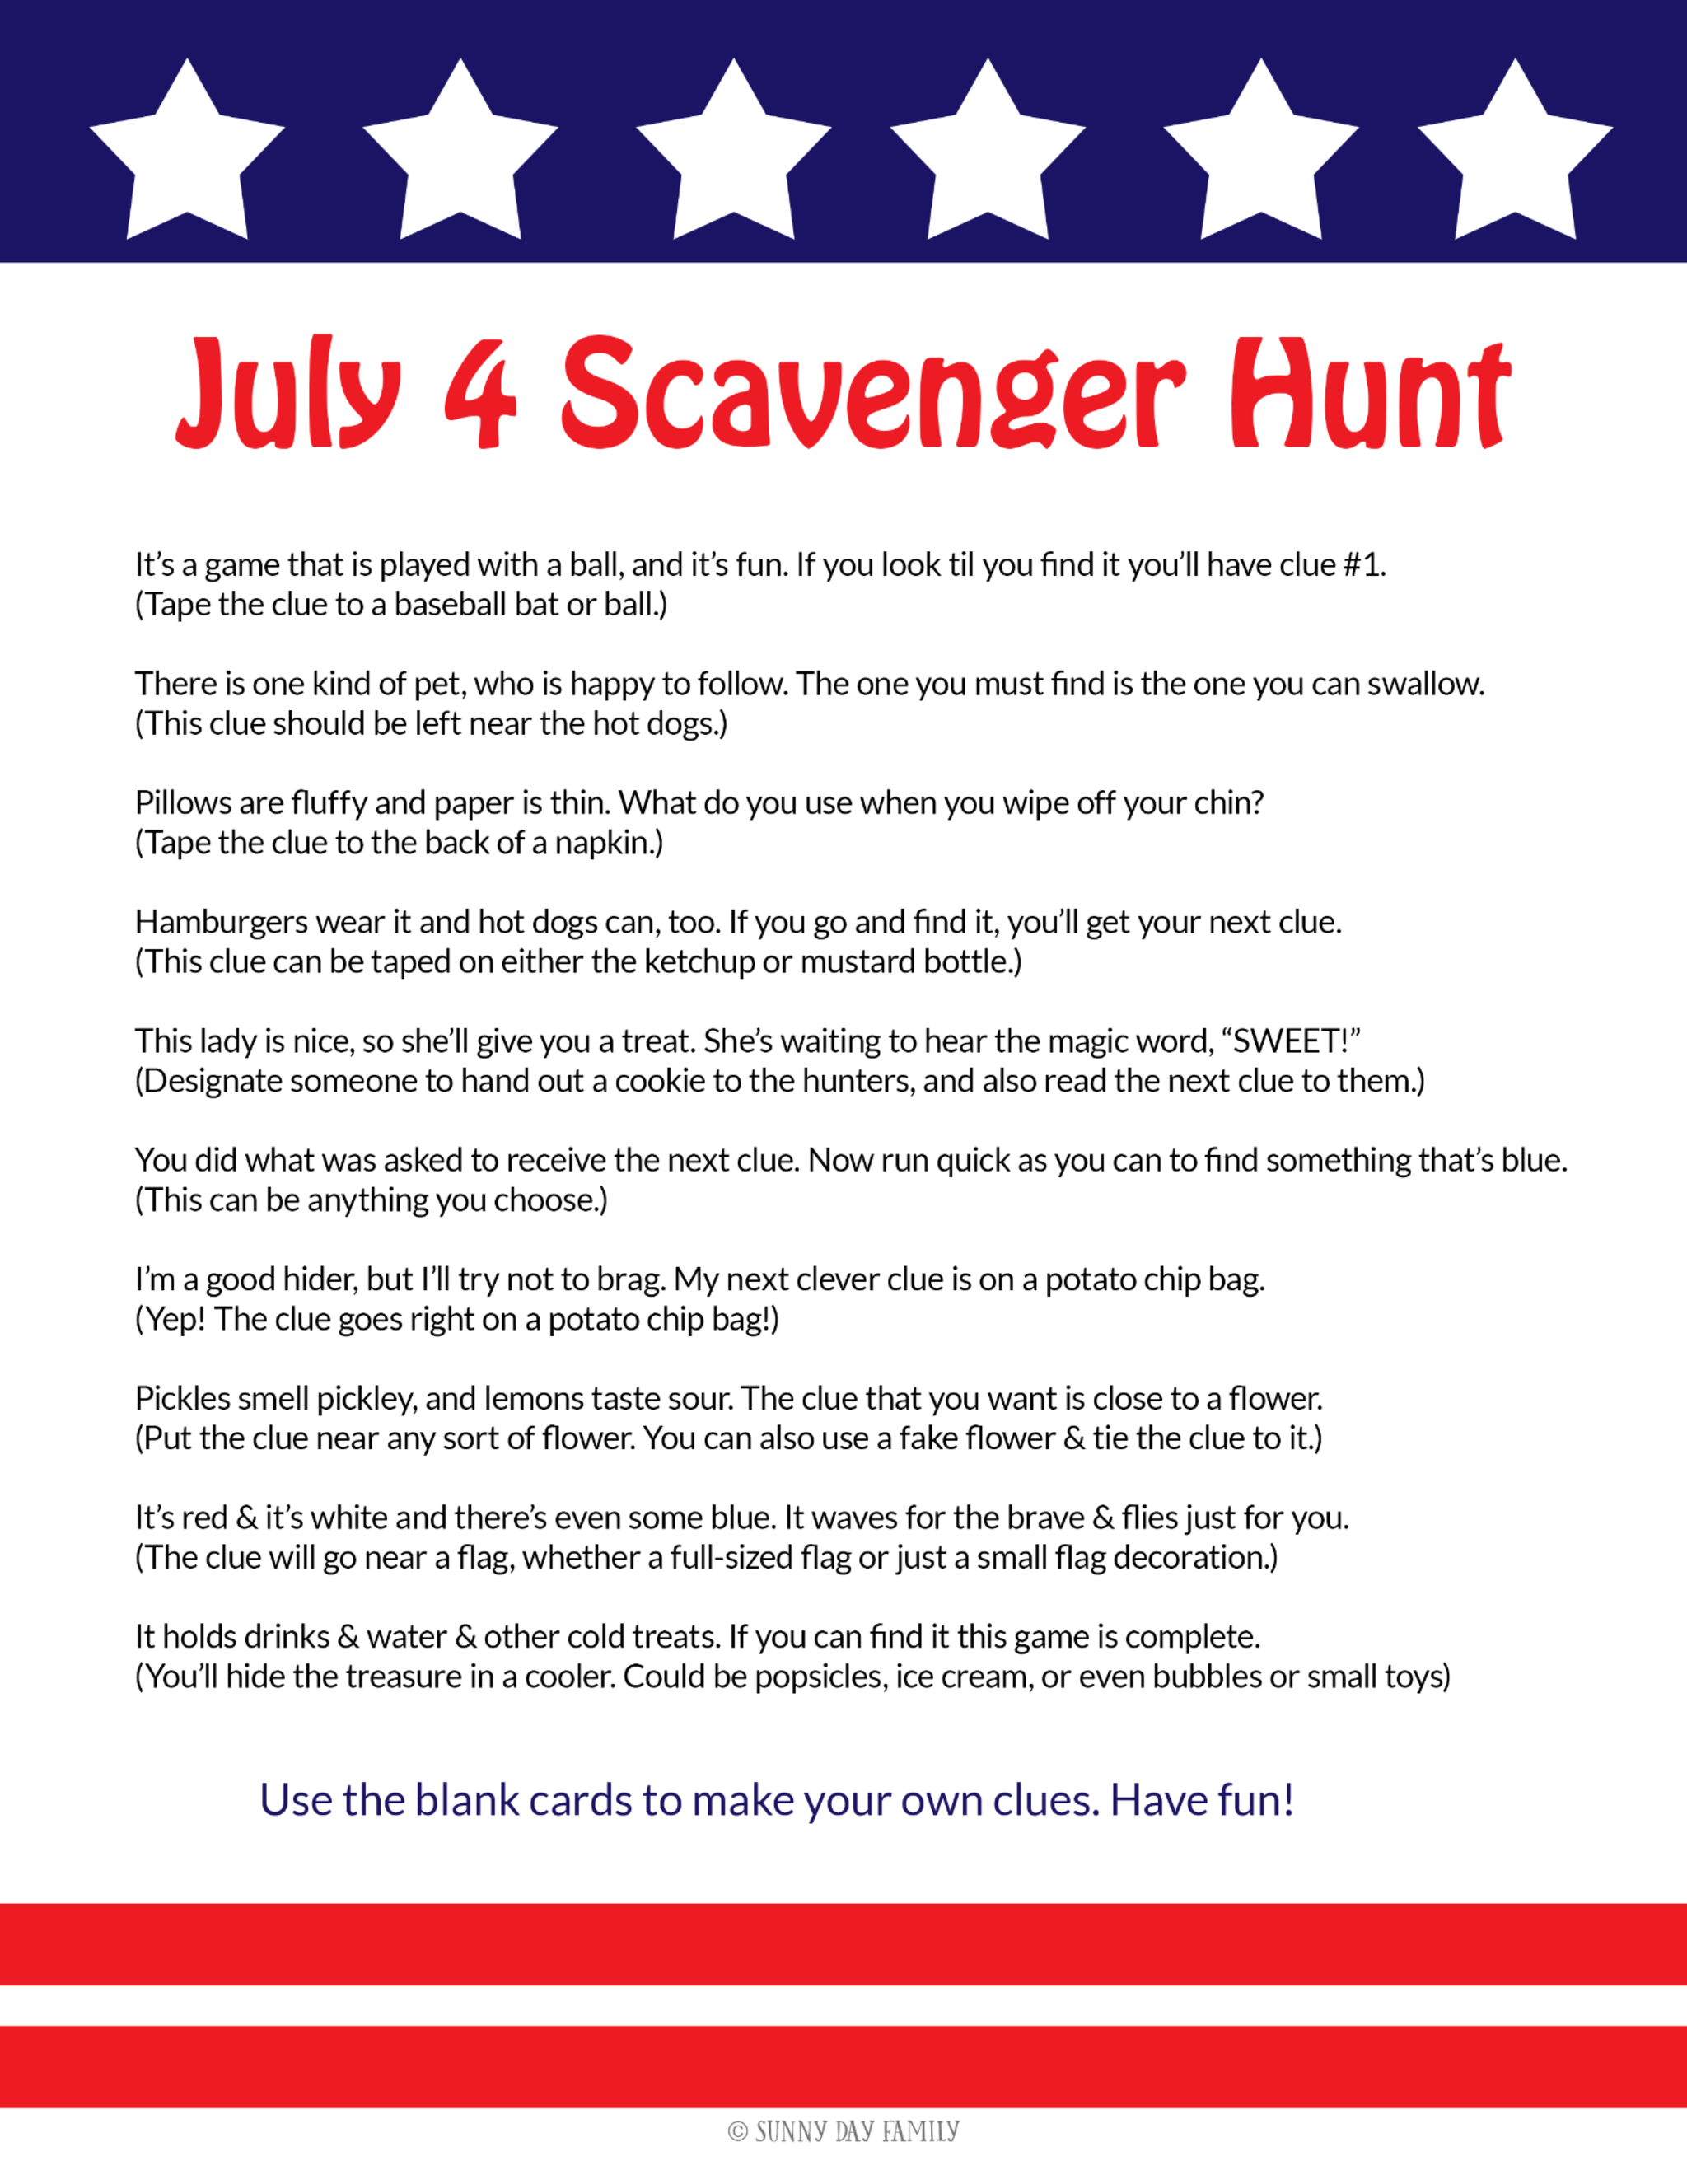 July 4 Scavenger Hunt 4th Of July Games 4th Of July Trivia July 4th